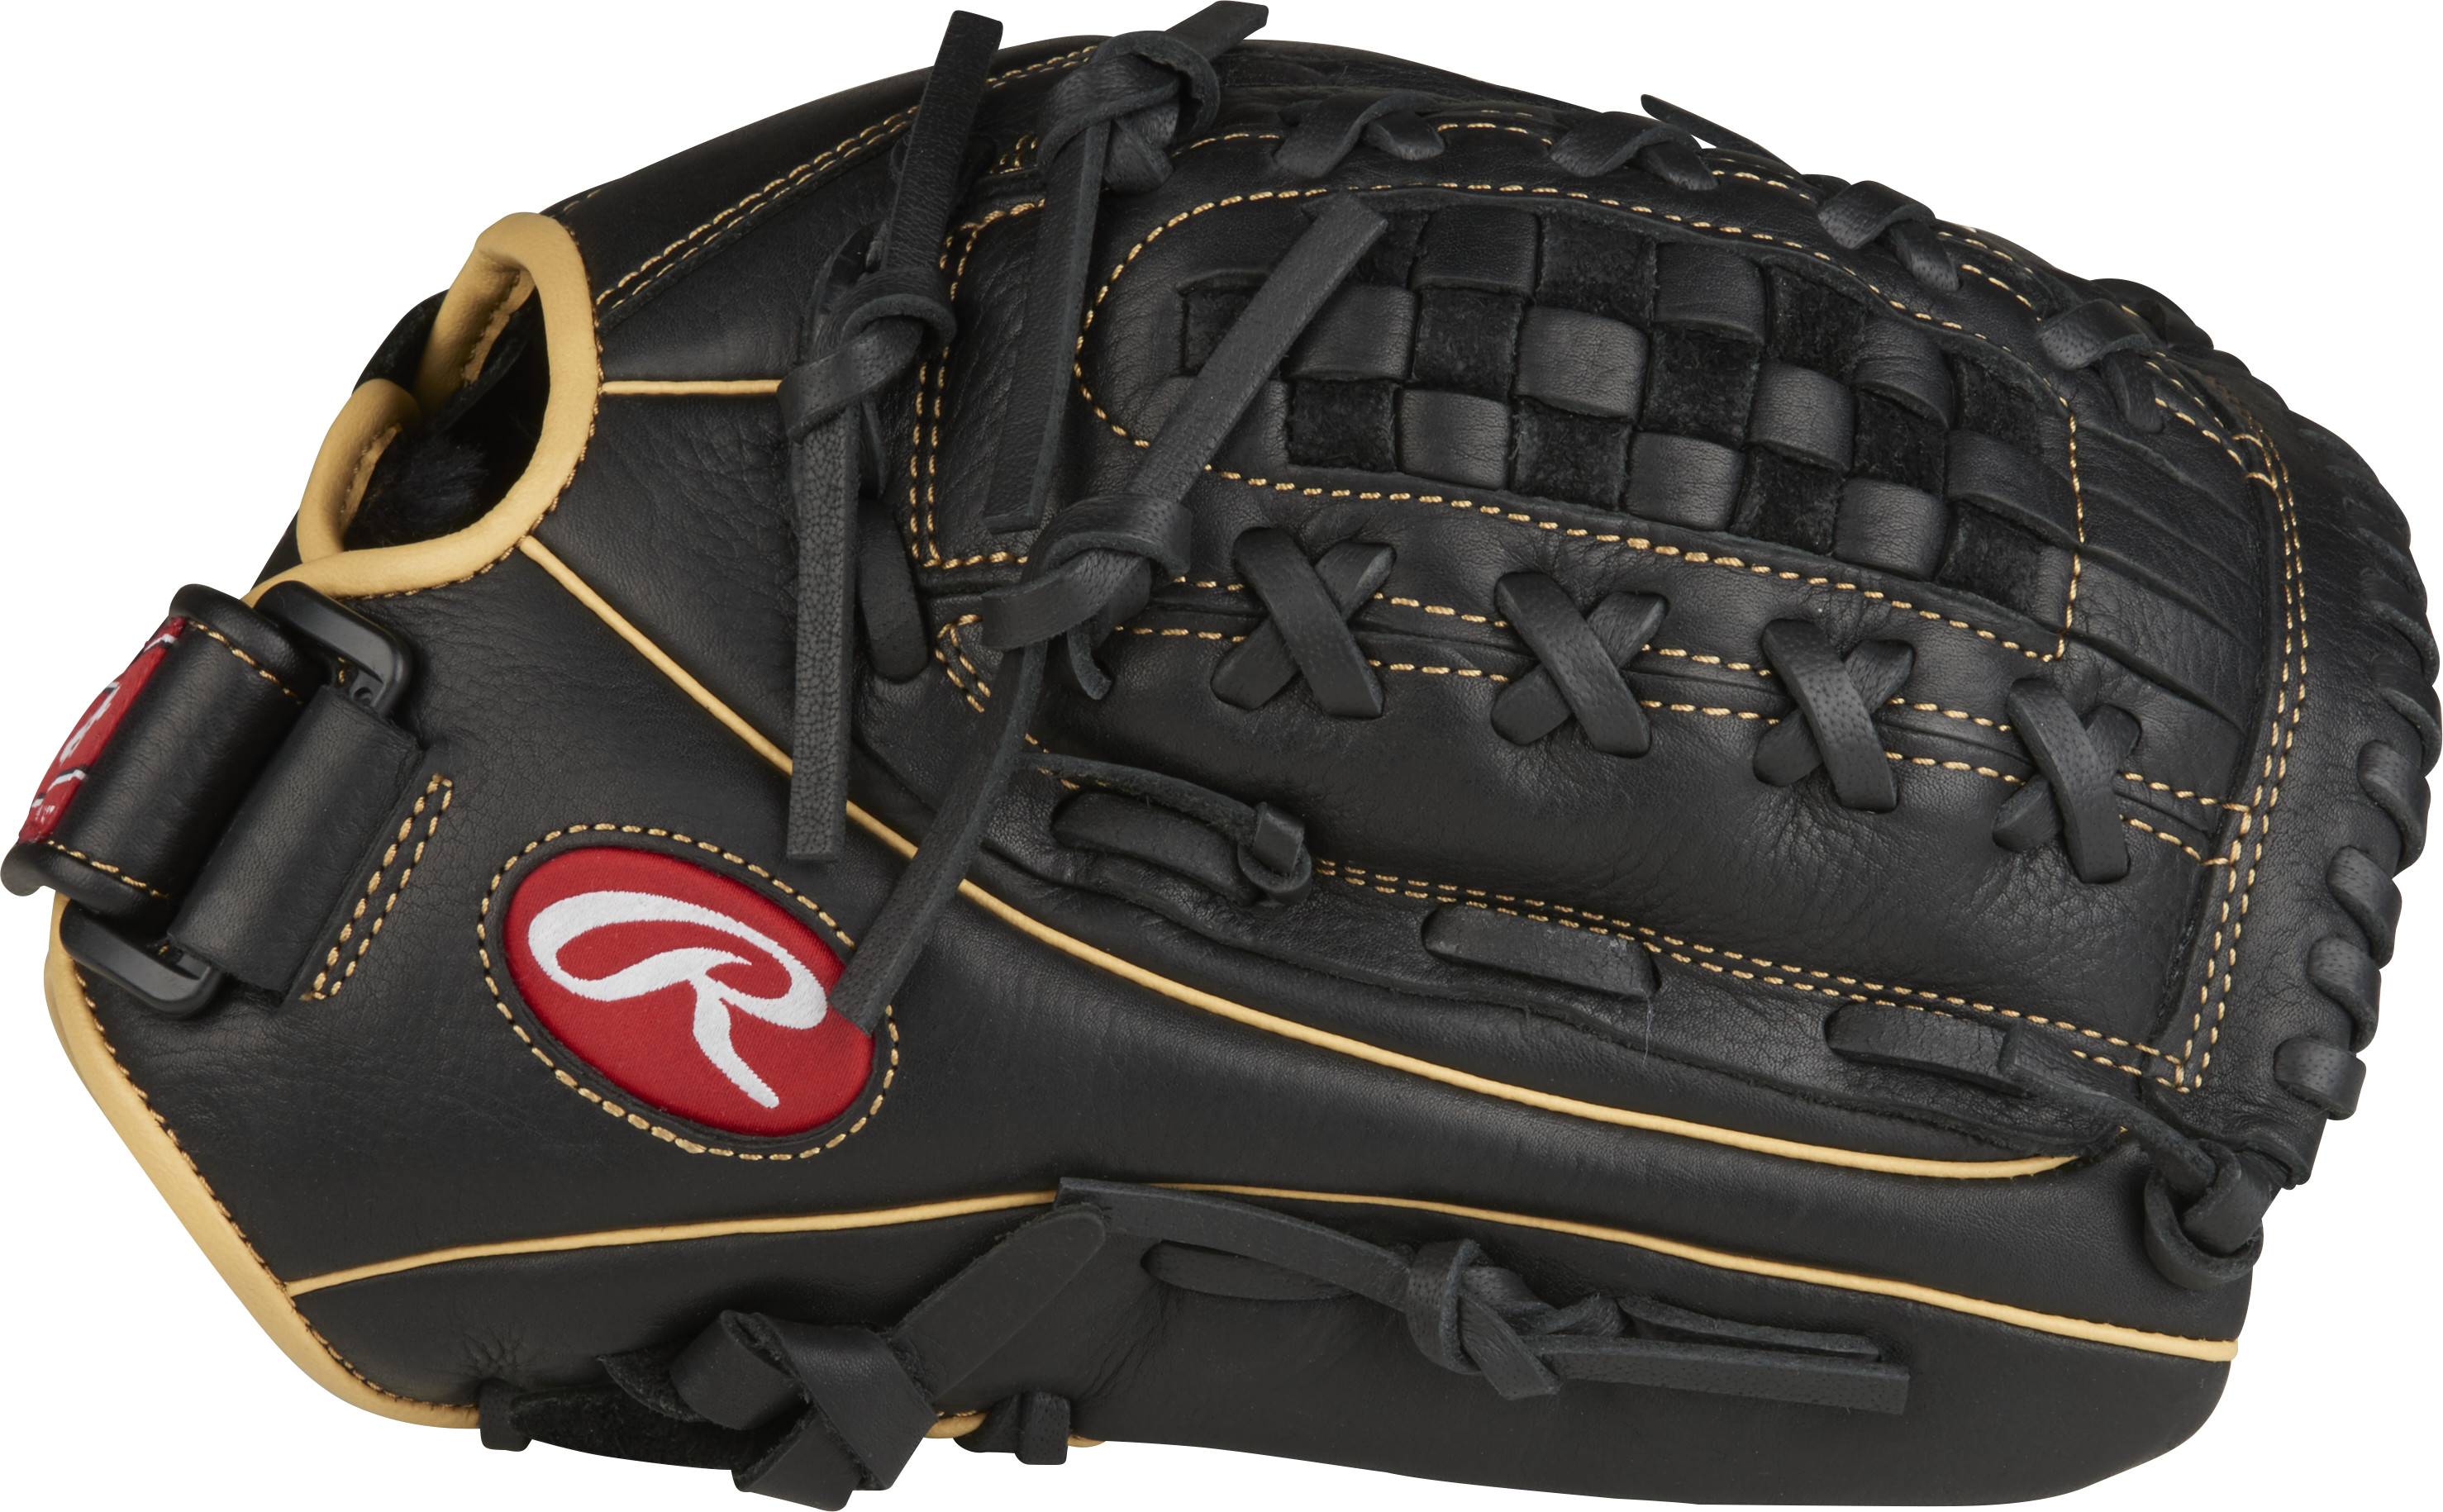 http://www.bestbatdeals.com/images/gloves/rawlings/RSO130BCC-3.jpg